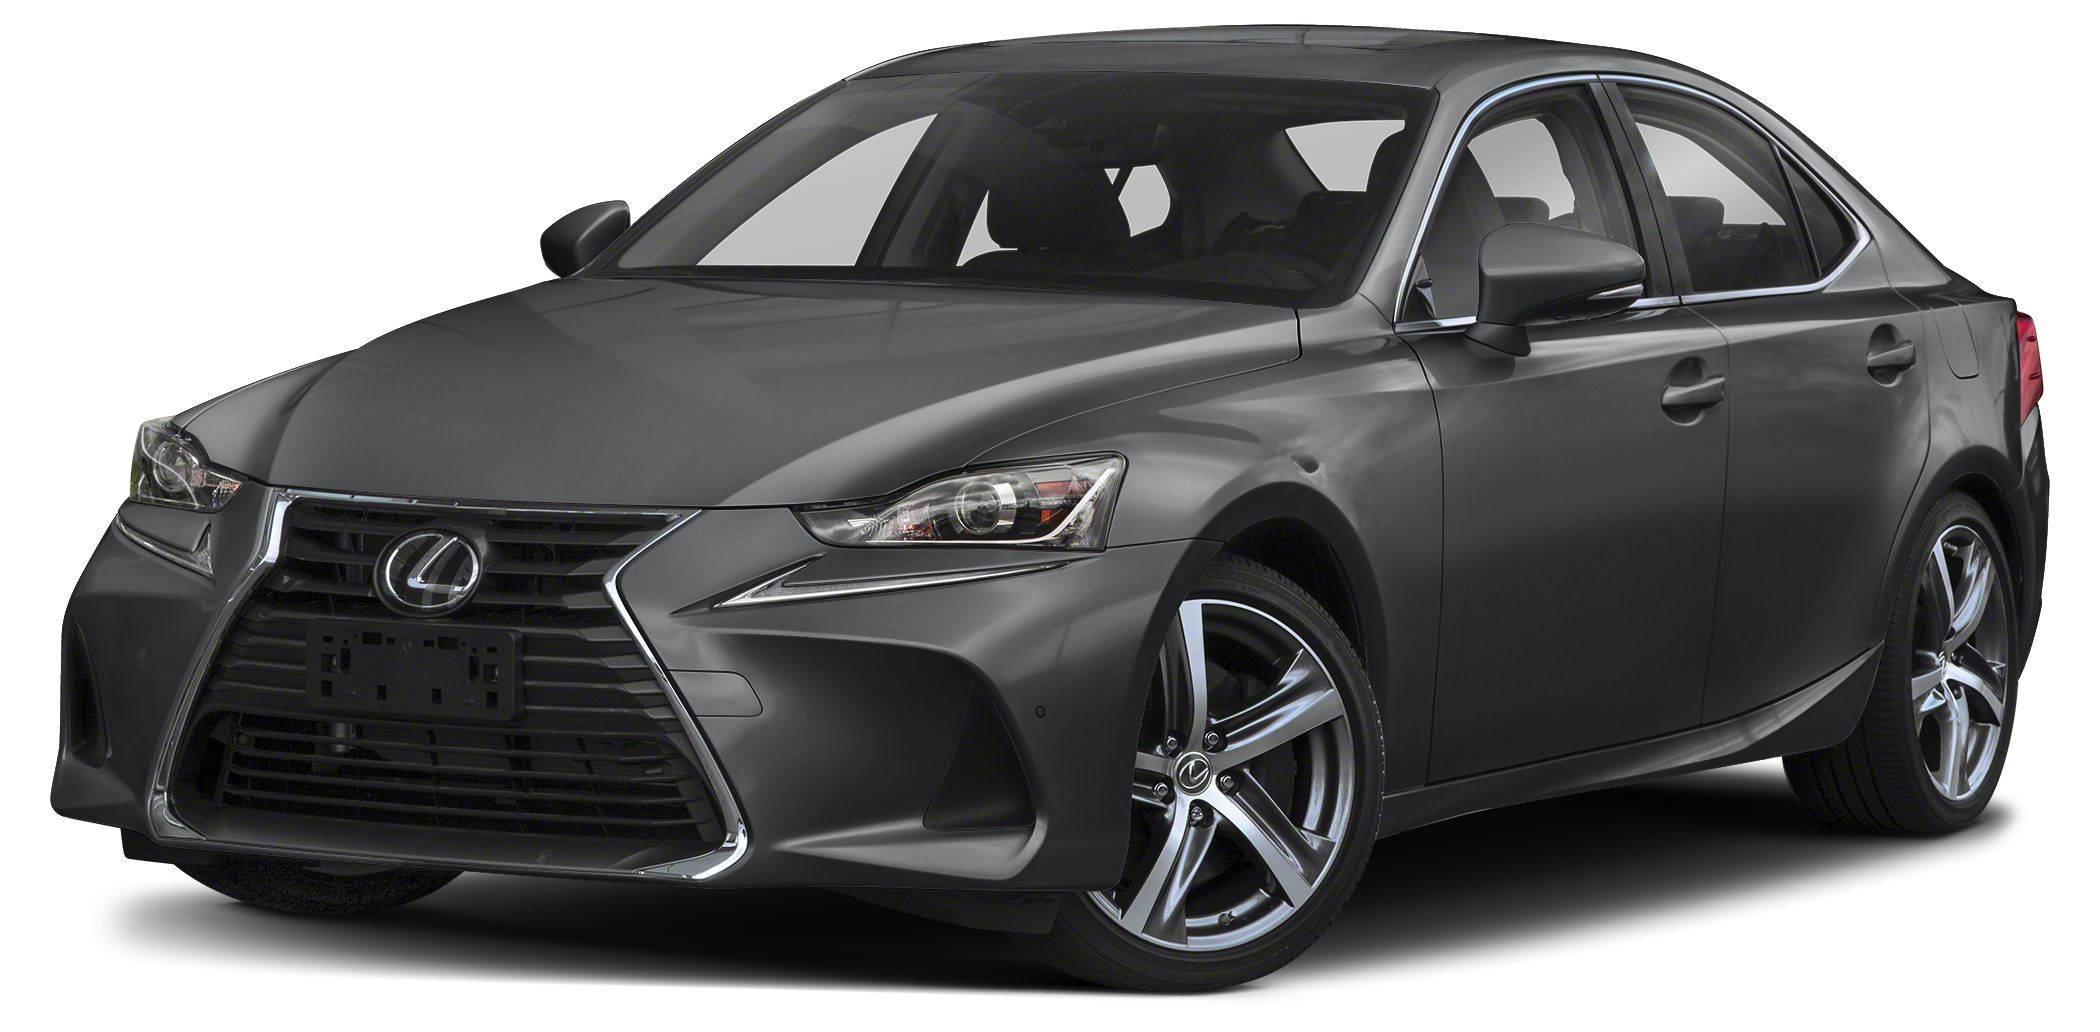 2017 Lexus IS 350 Base DISCLAIMER We are excited to offer this vehicle to you but it is currently